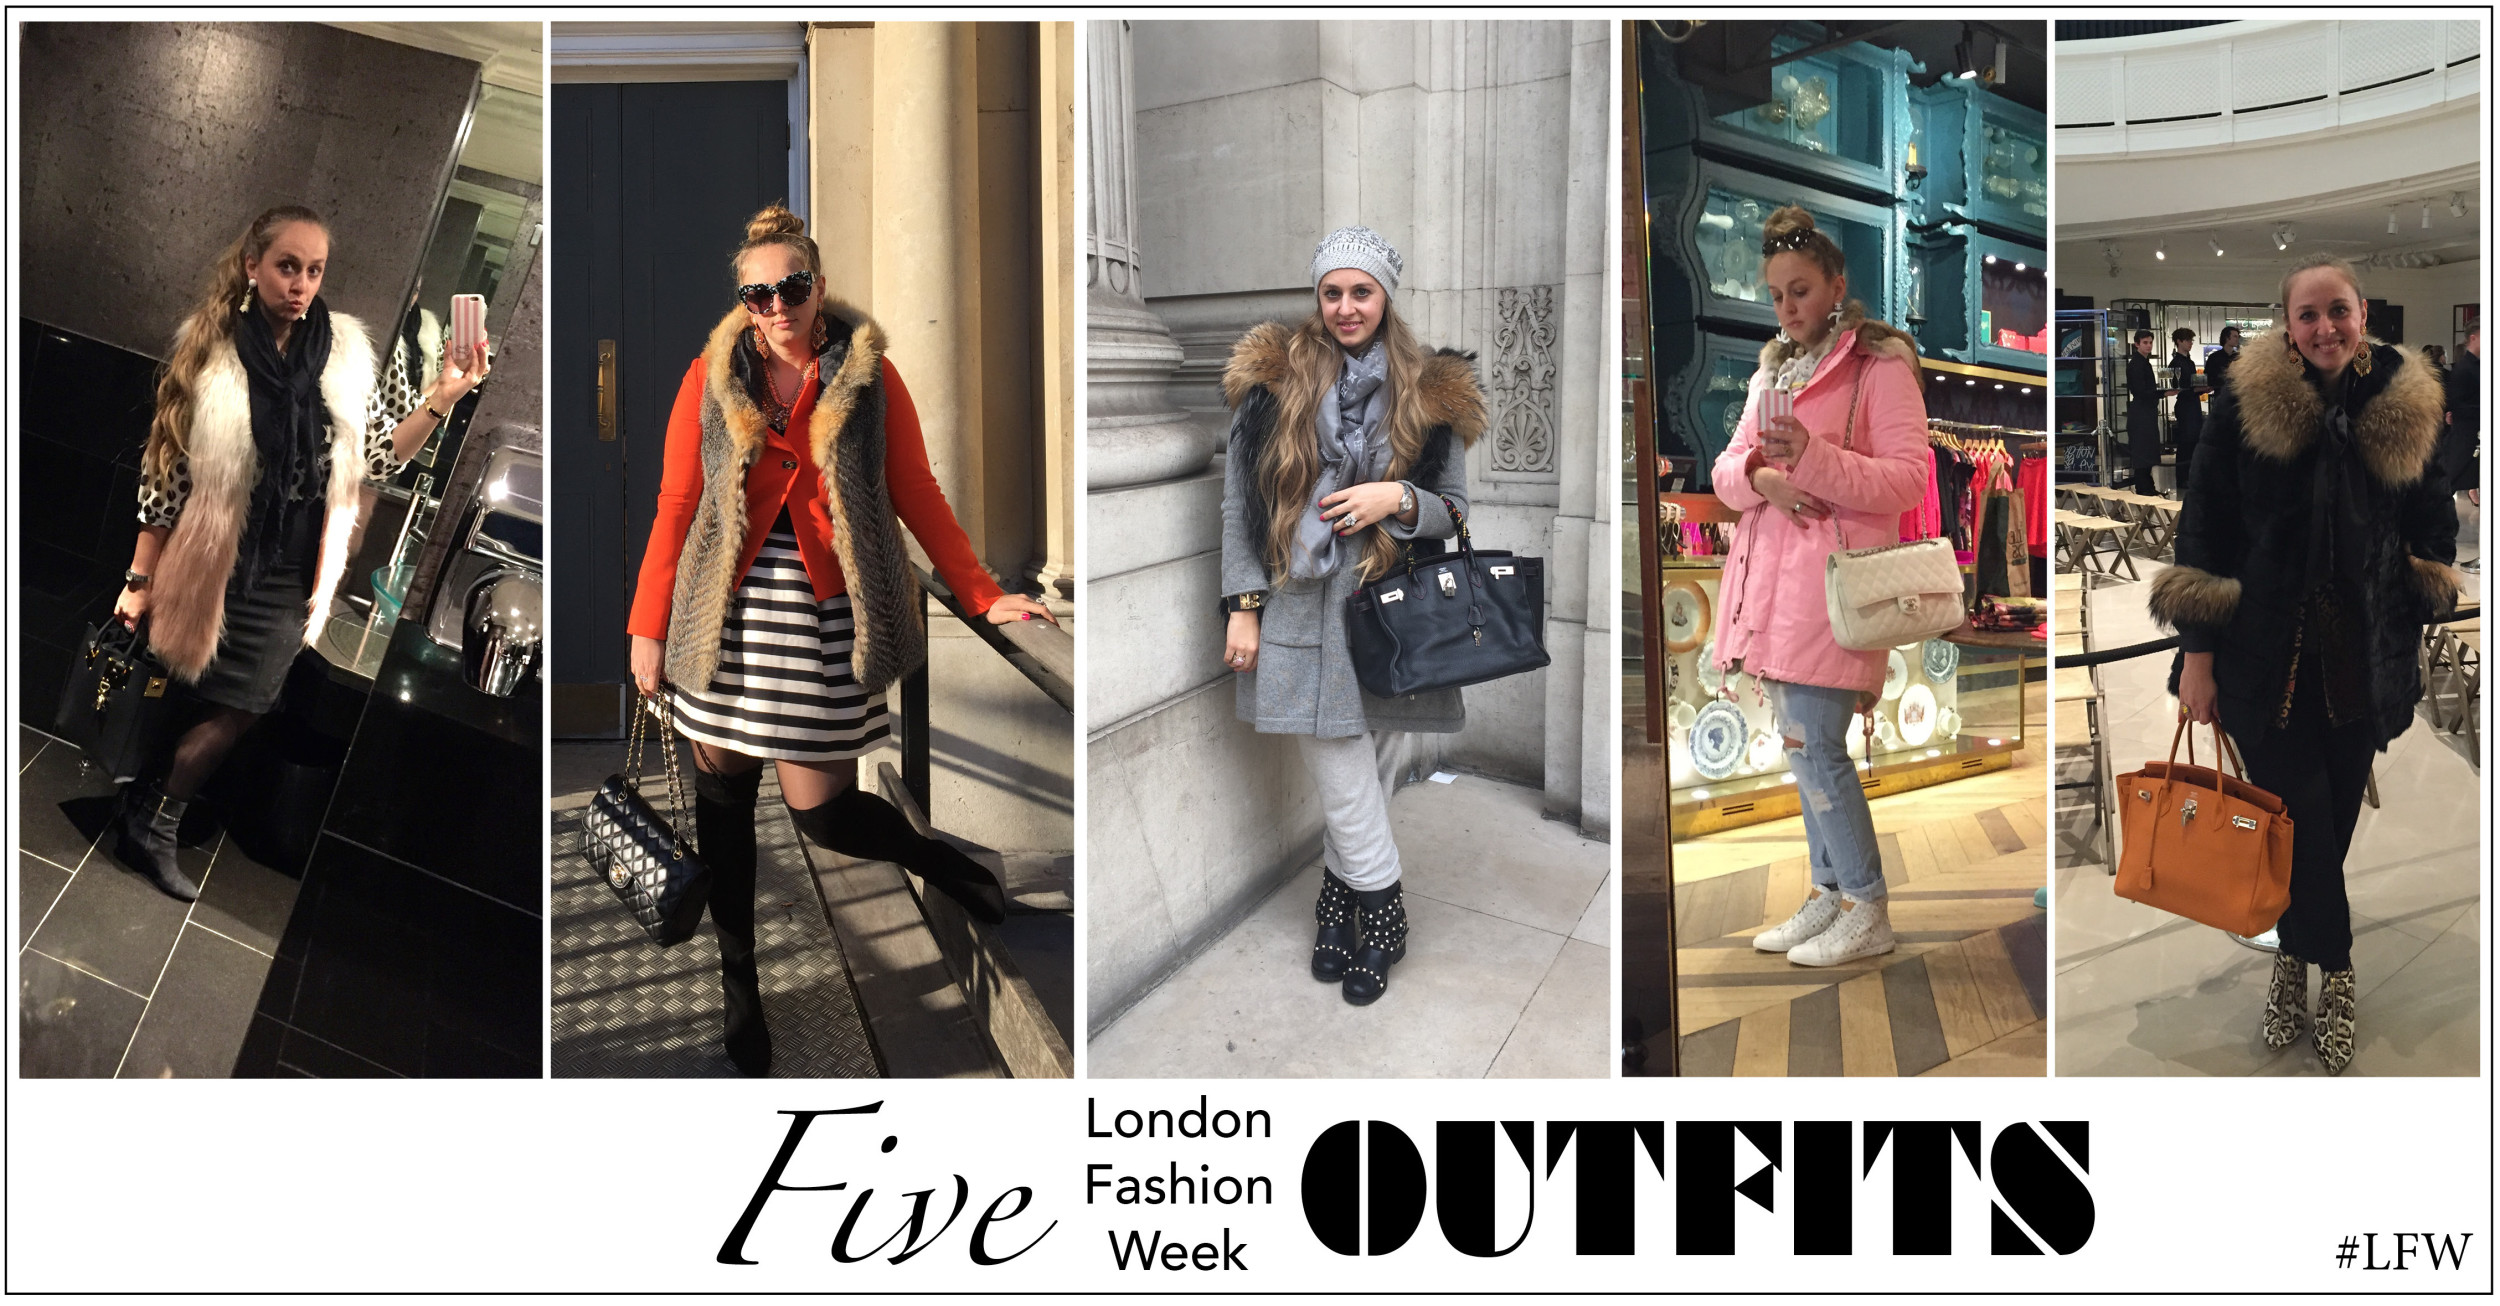 OUTFITS London Fashion Week